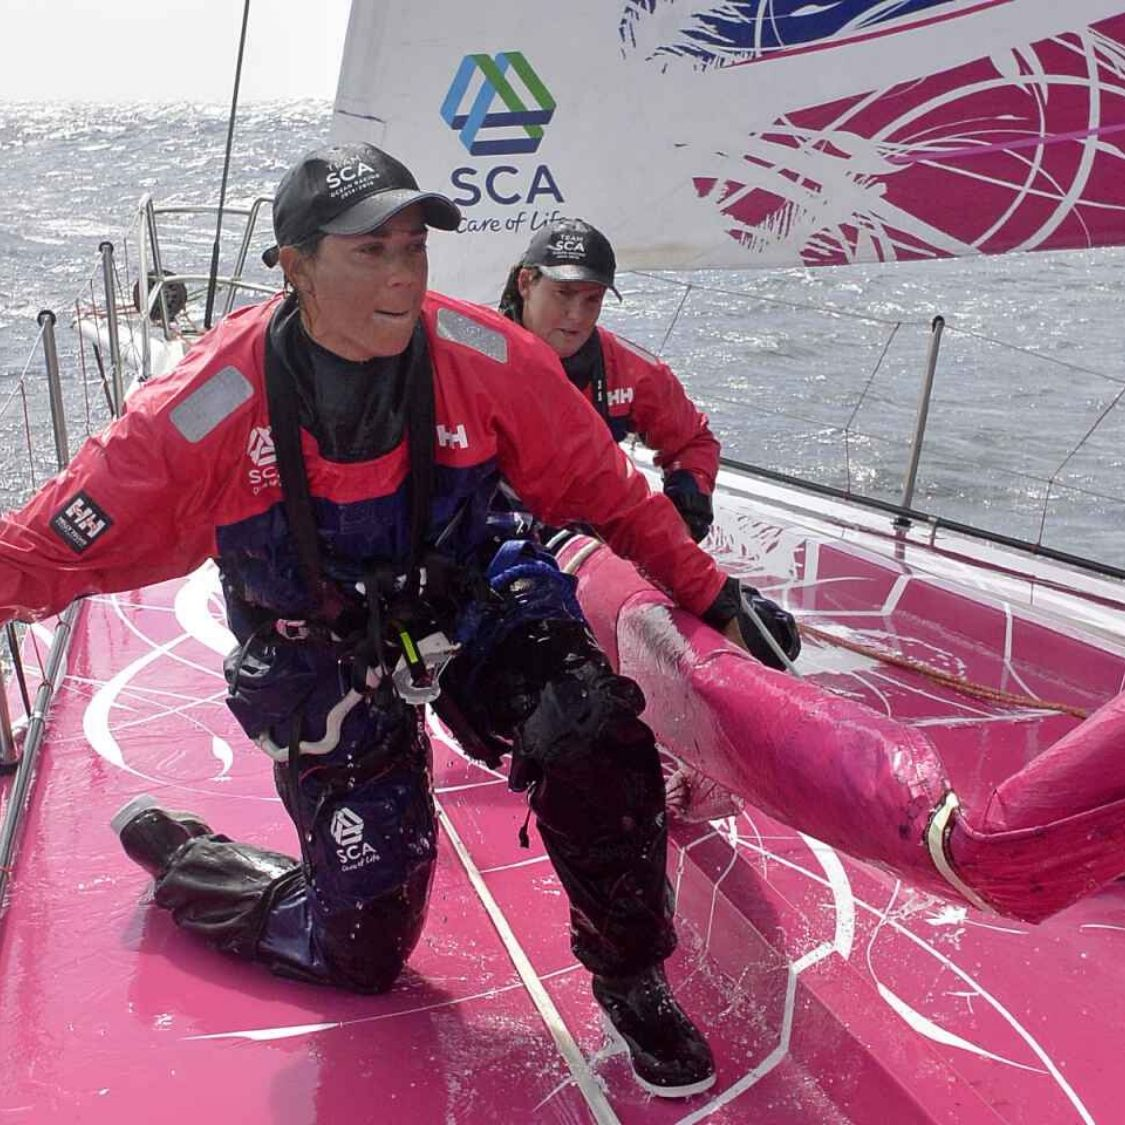 SPT athlete sara hastreiter on the bow of SCA in the Volvo Ocean Race